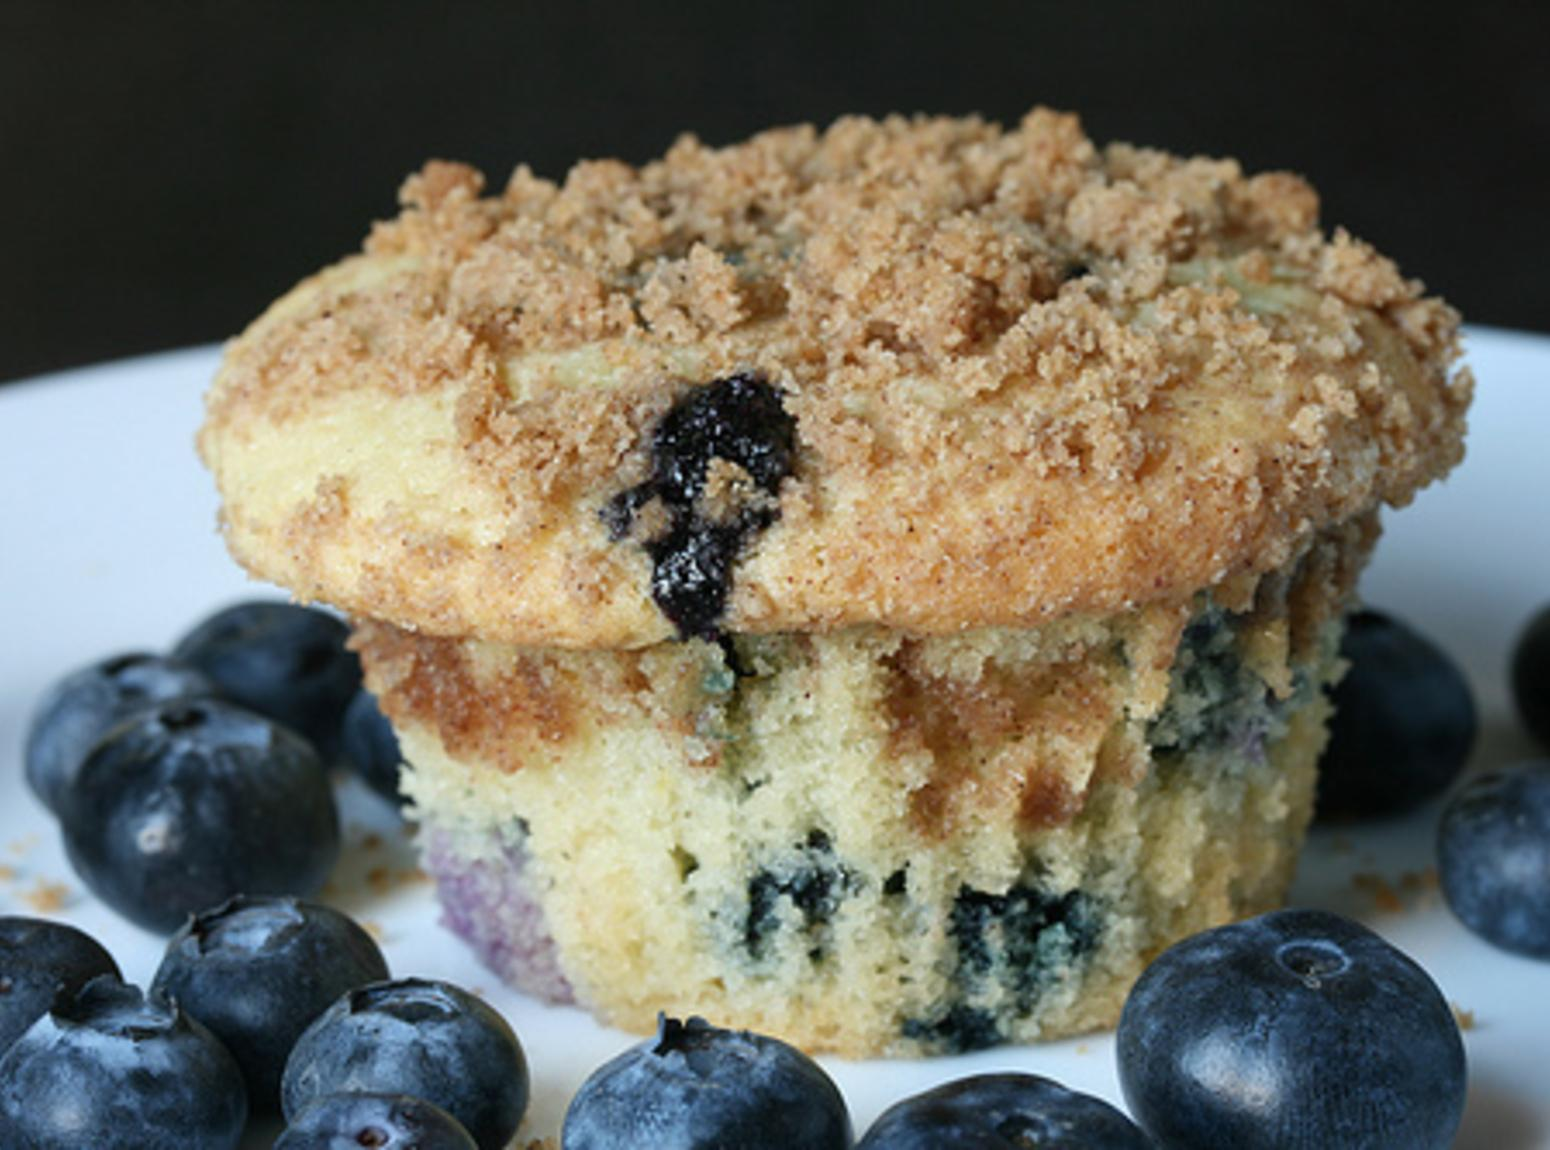 Blueberry Muffin Cupcakes with a Streusel Topping and Vanilla Icing Recipe